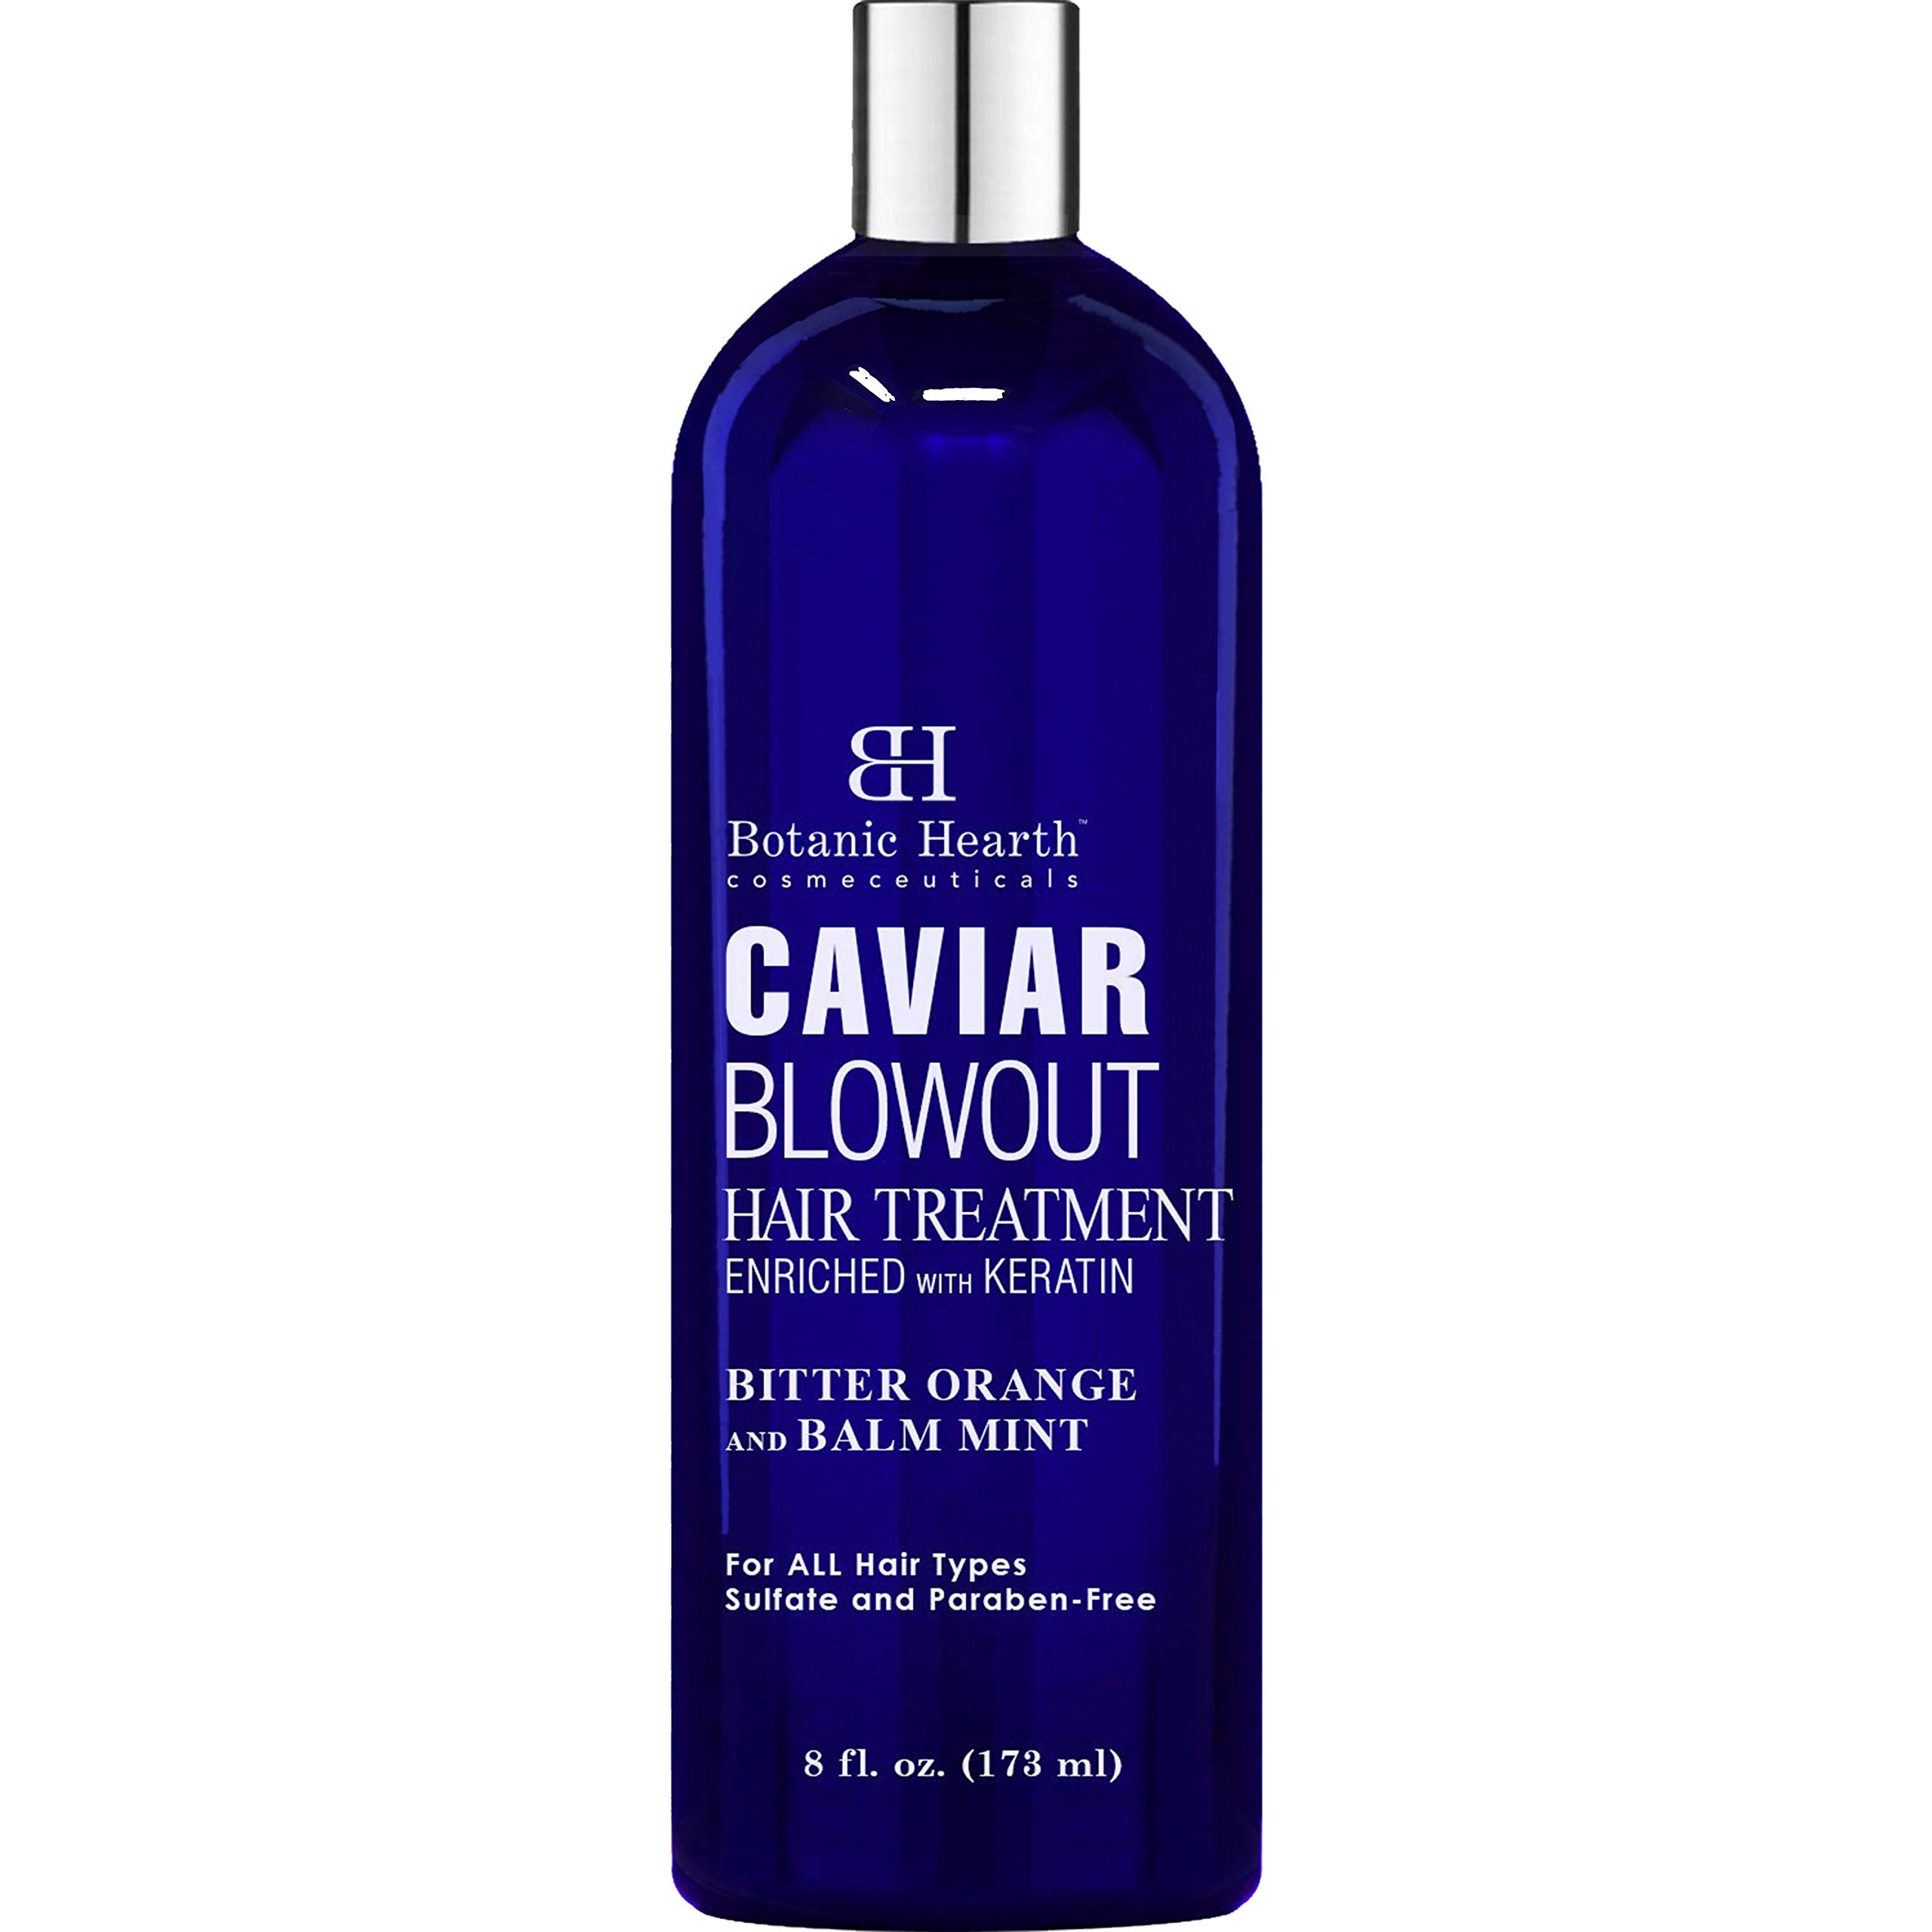 BOTANIC HEARTH Caviar Corrective Blowout Hair Treatment - Keratin Enriched Heat Activated Anti Frizz Smoothing Formula - 8 fl oz by Botanic Hearth